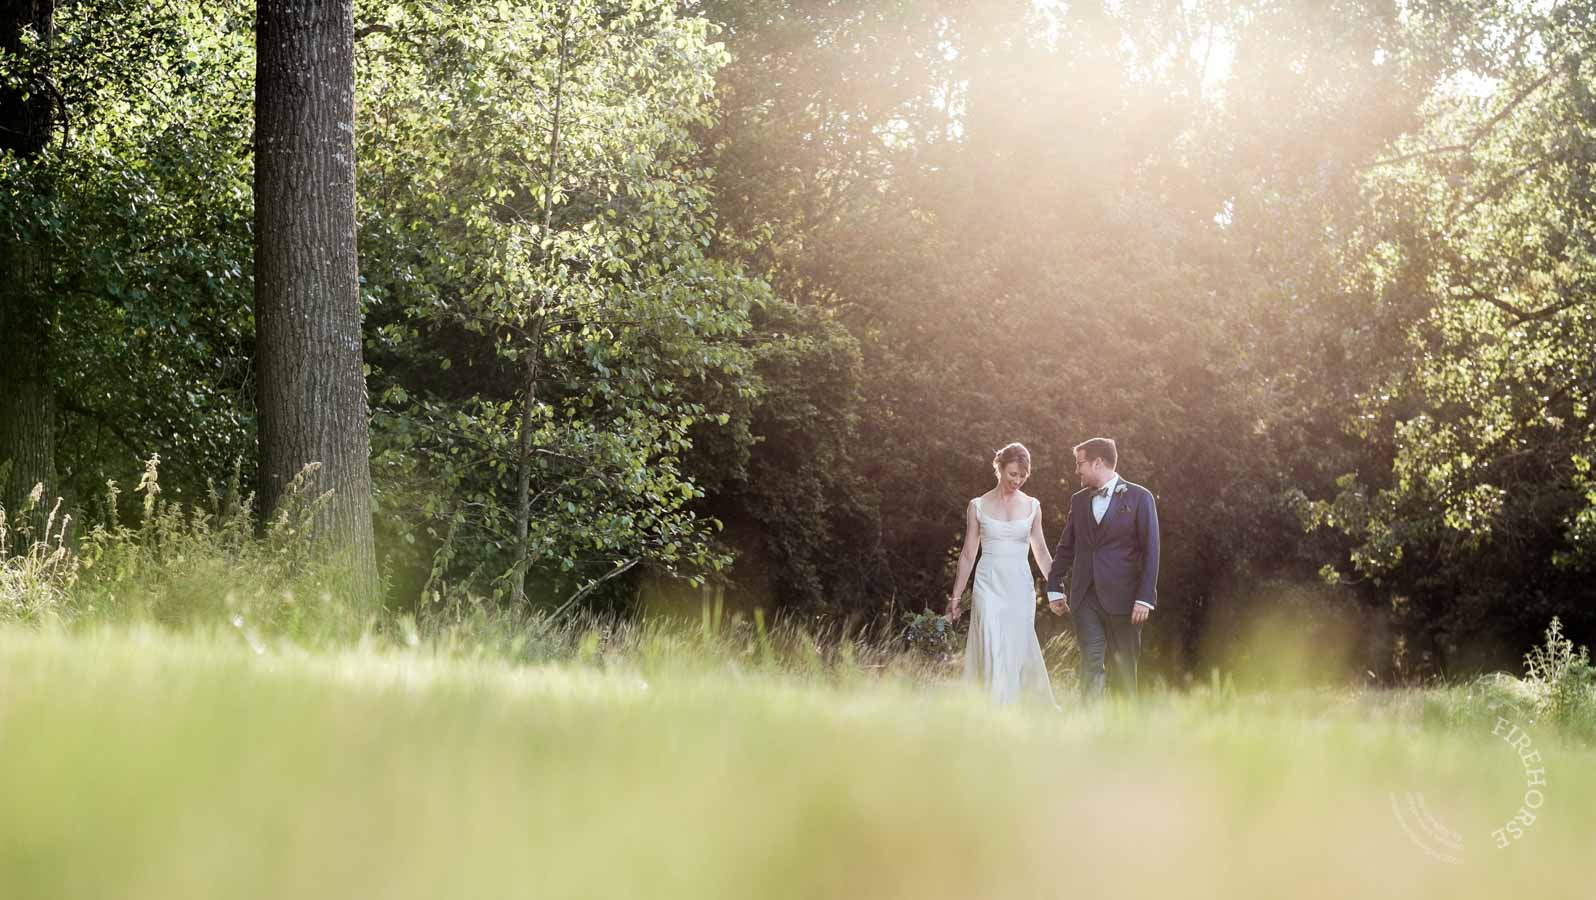 Lot-et-Garonne-Wedding-Photography-299